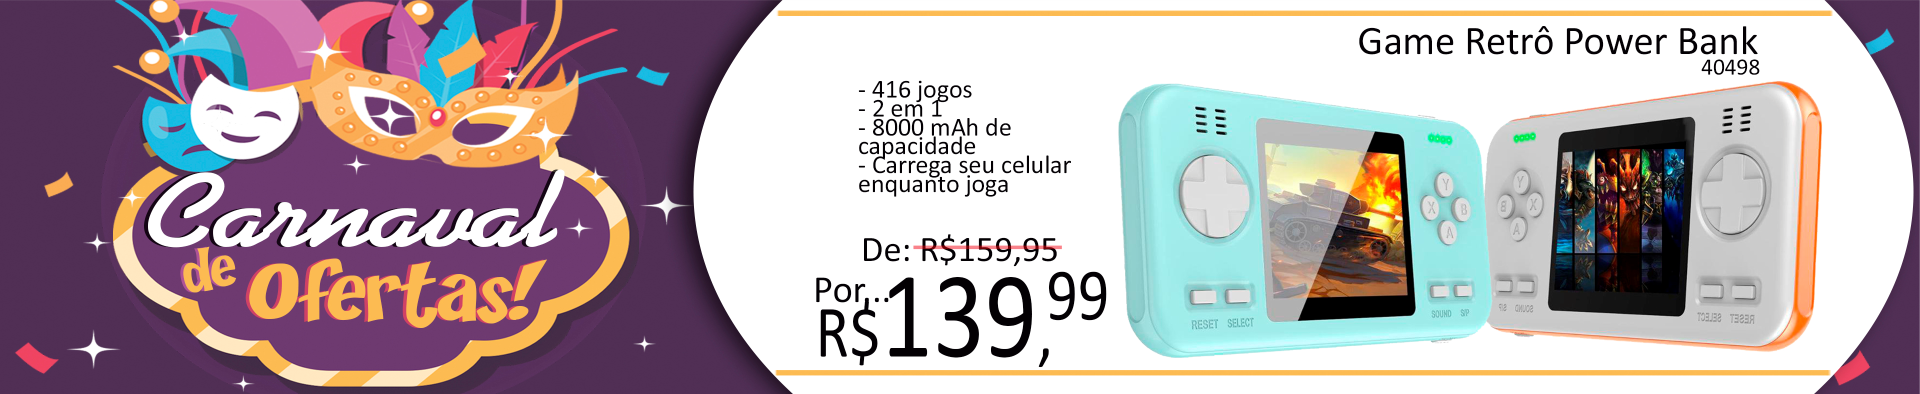 Banner Topo 1920X394 Carnaval - Game Retrô Power Bank